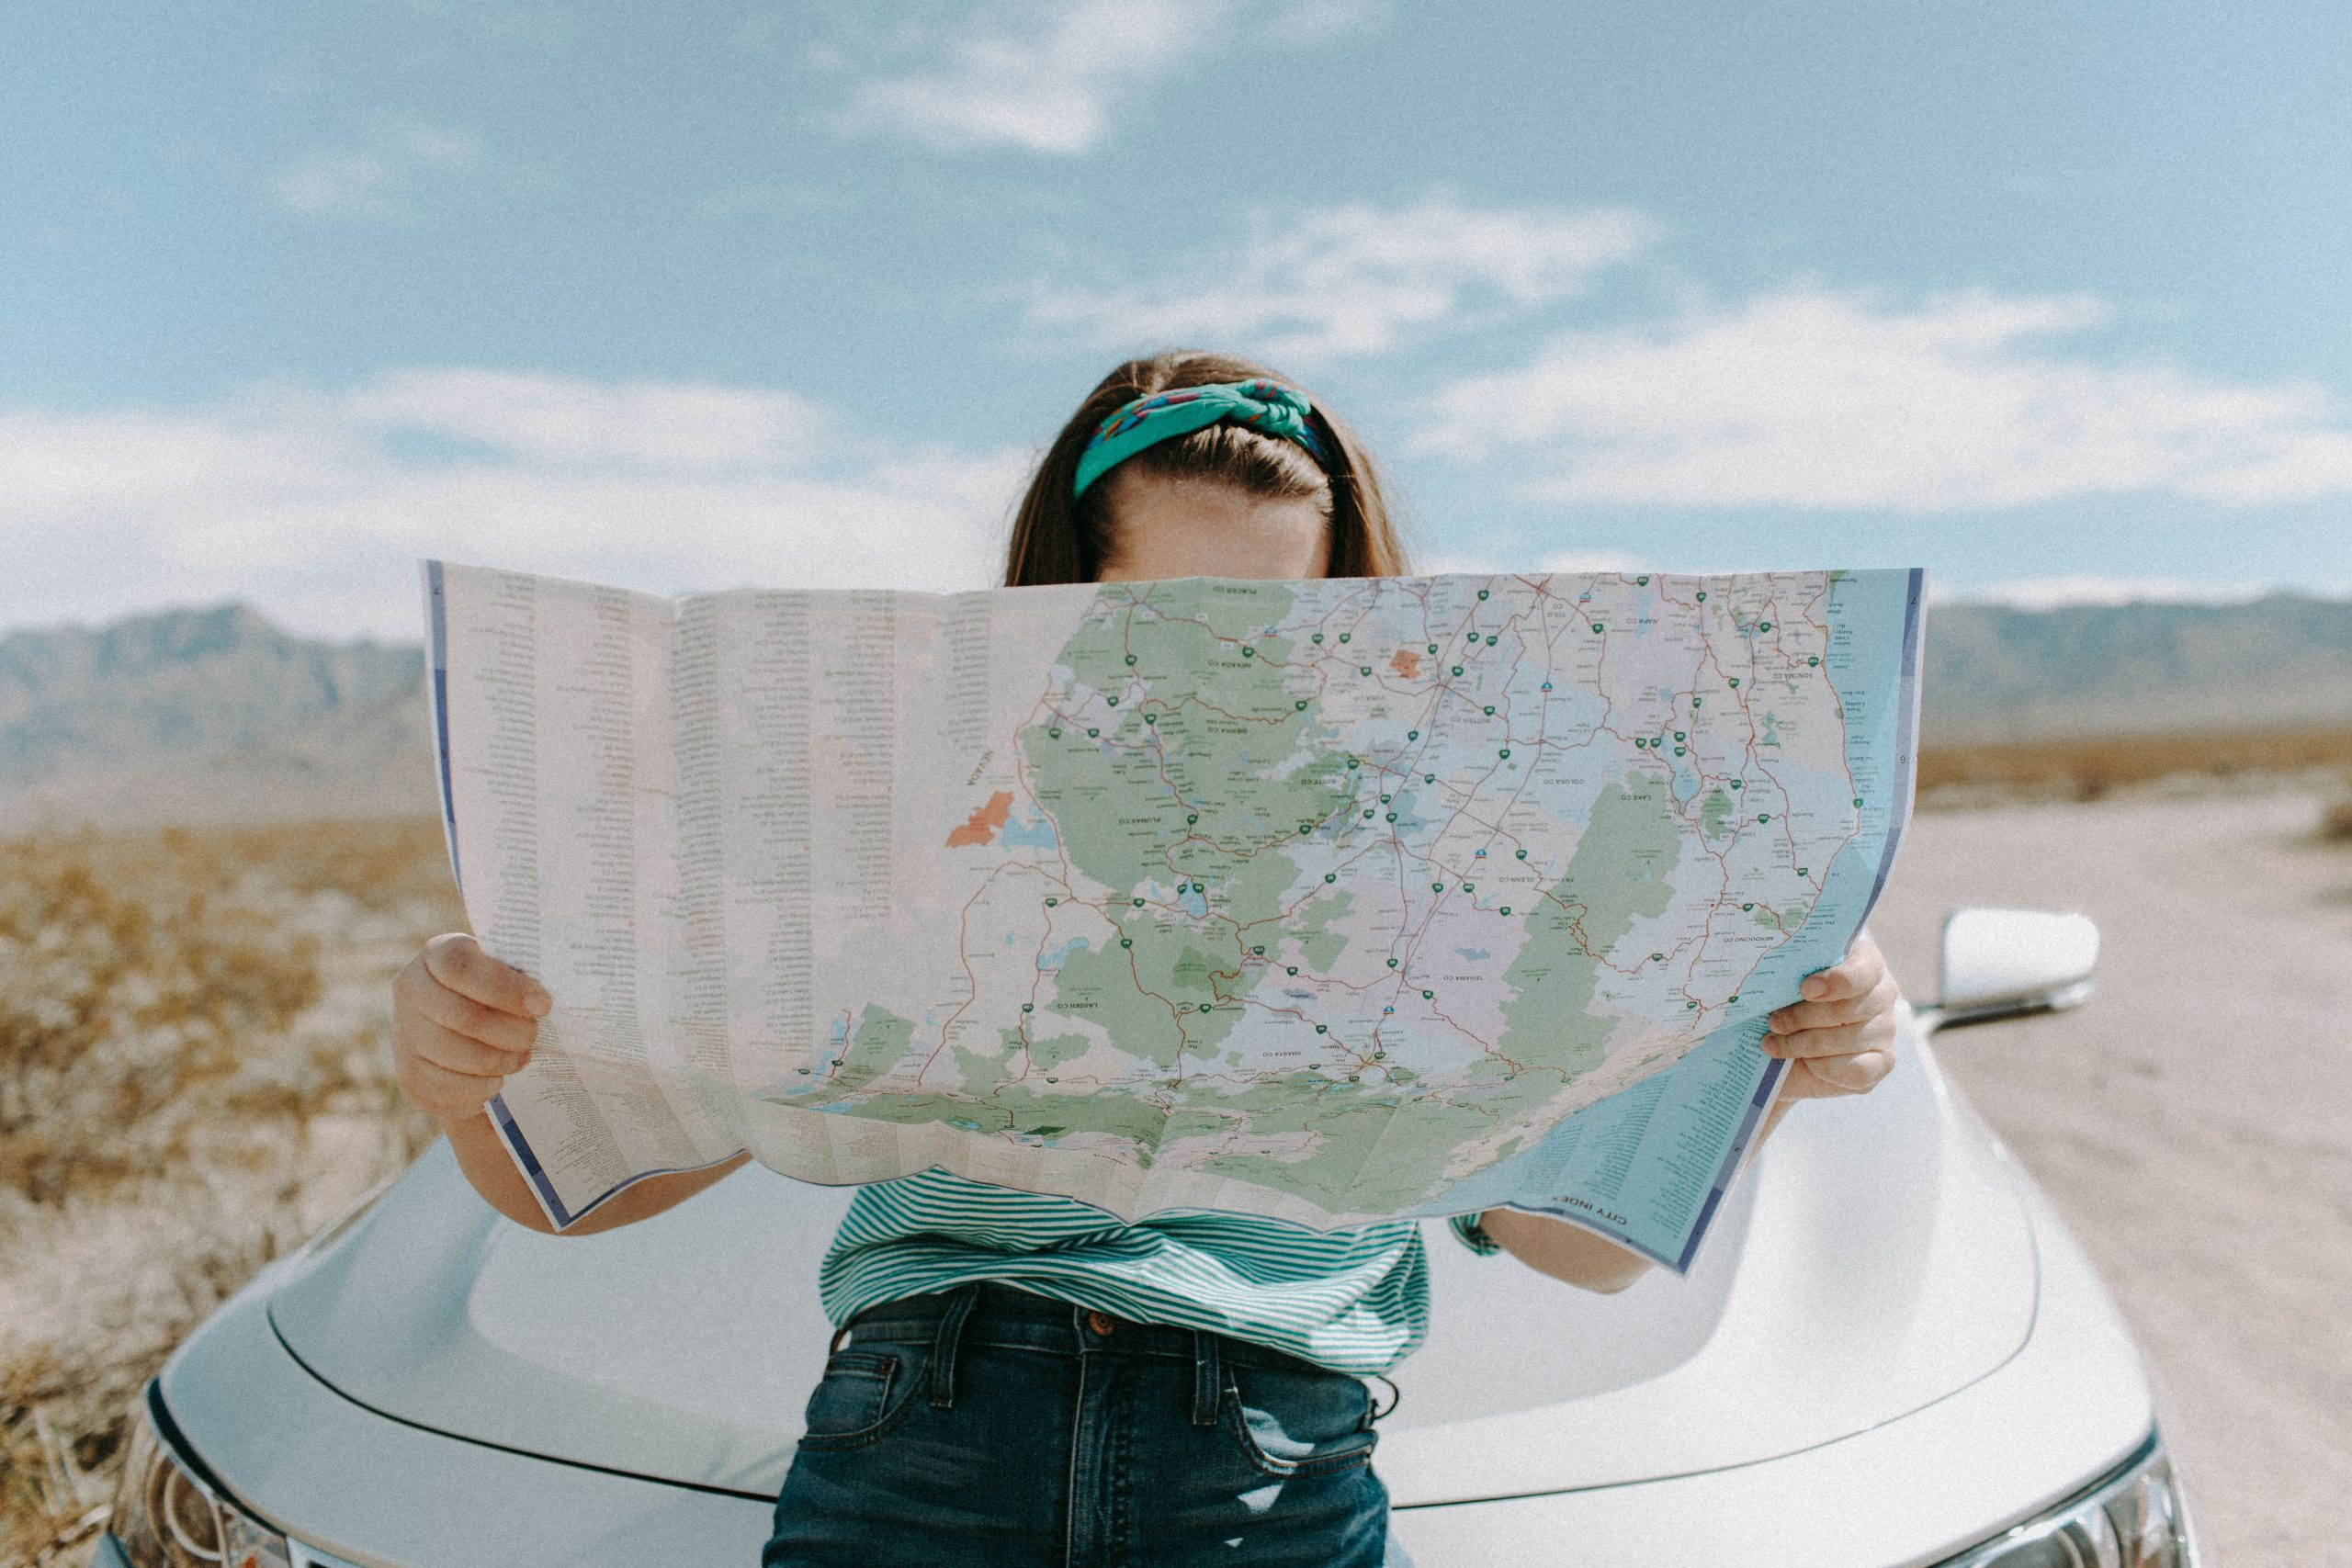 Road trip - Checking the map